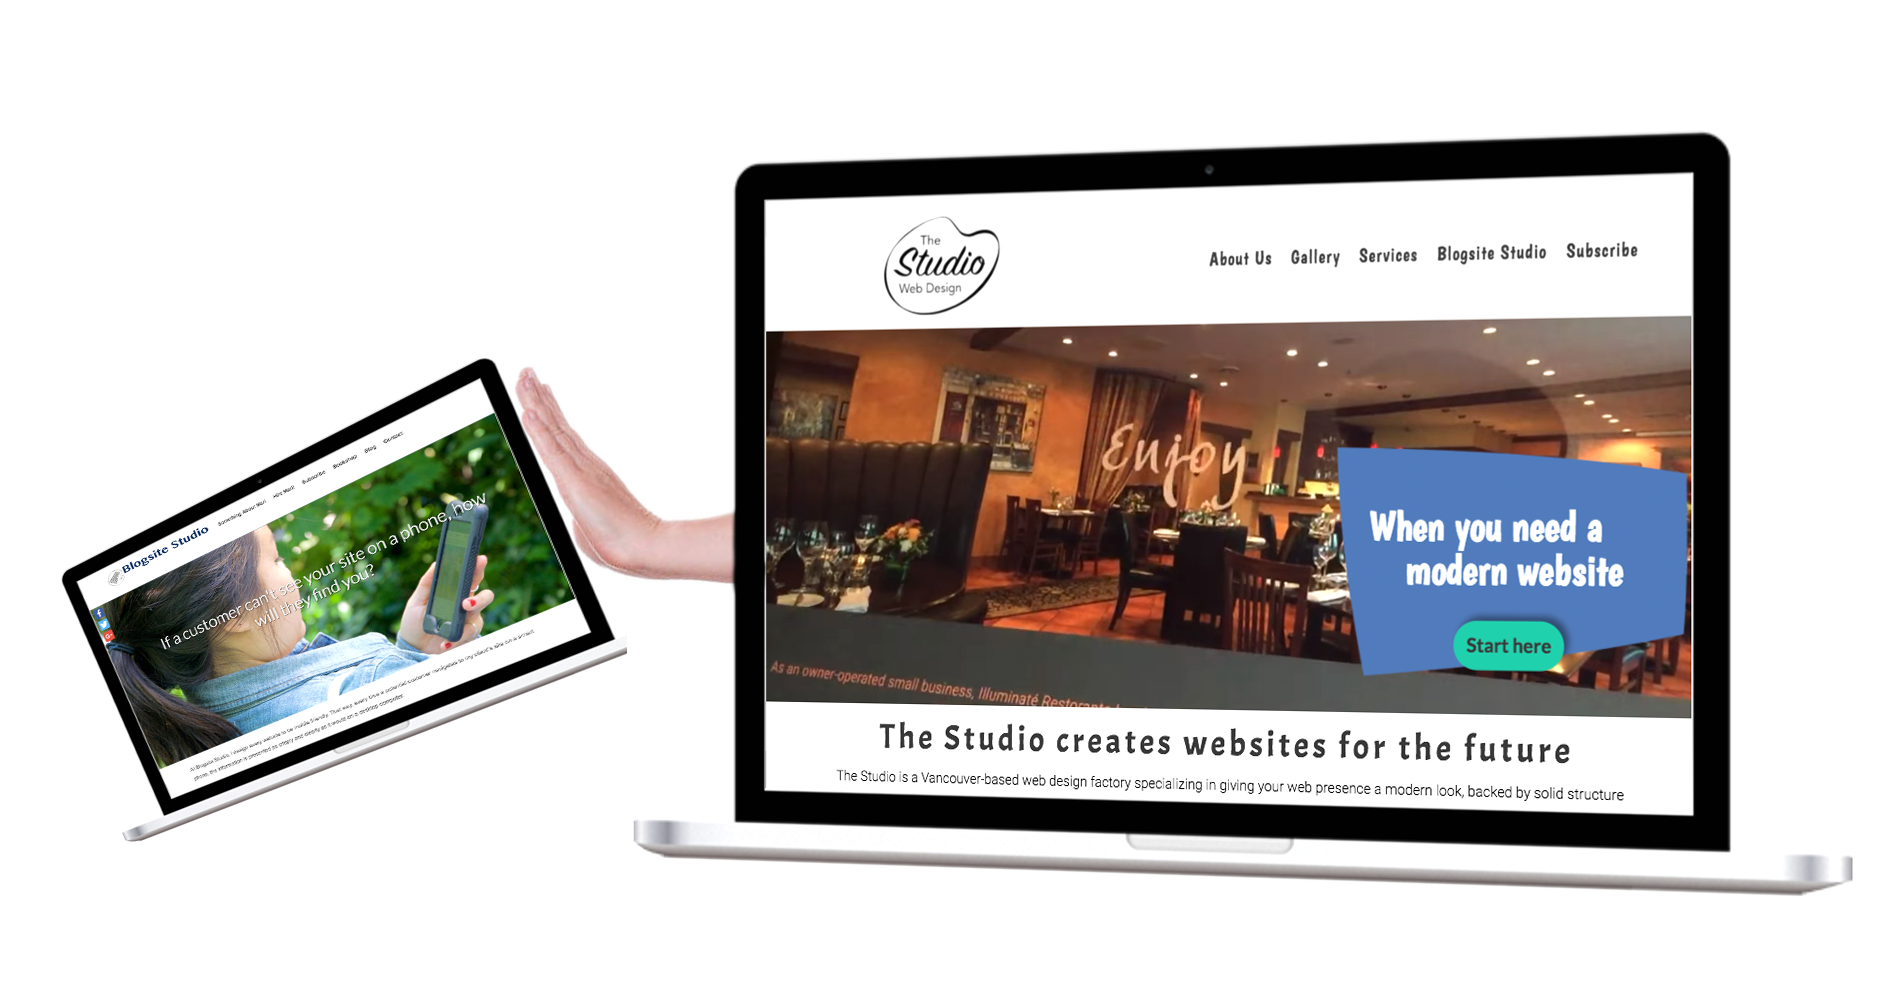 Website redesign of The Studio